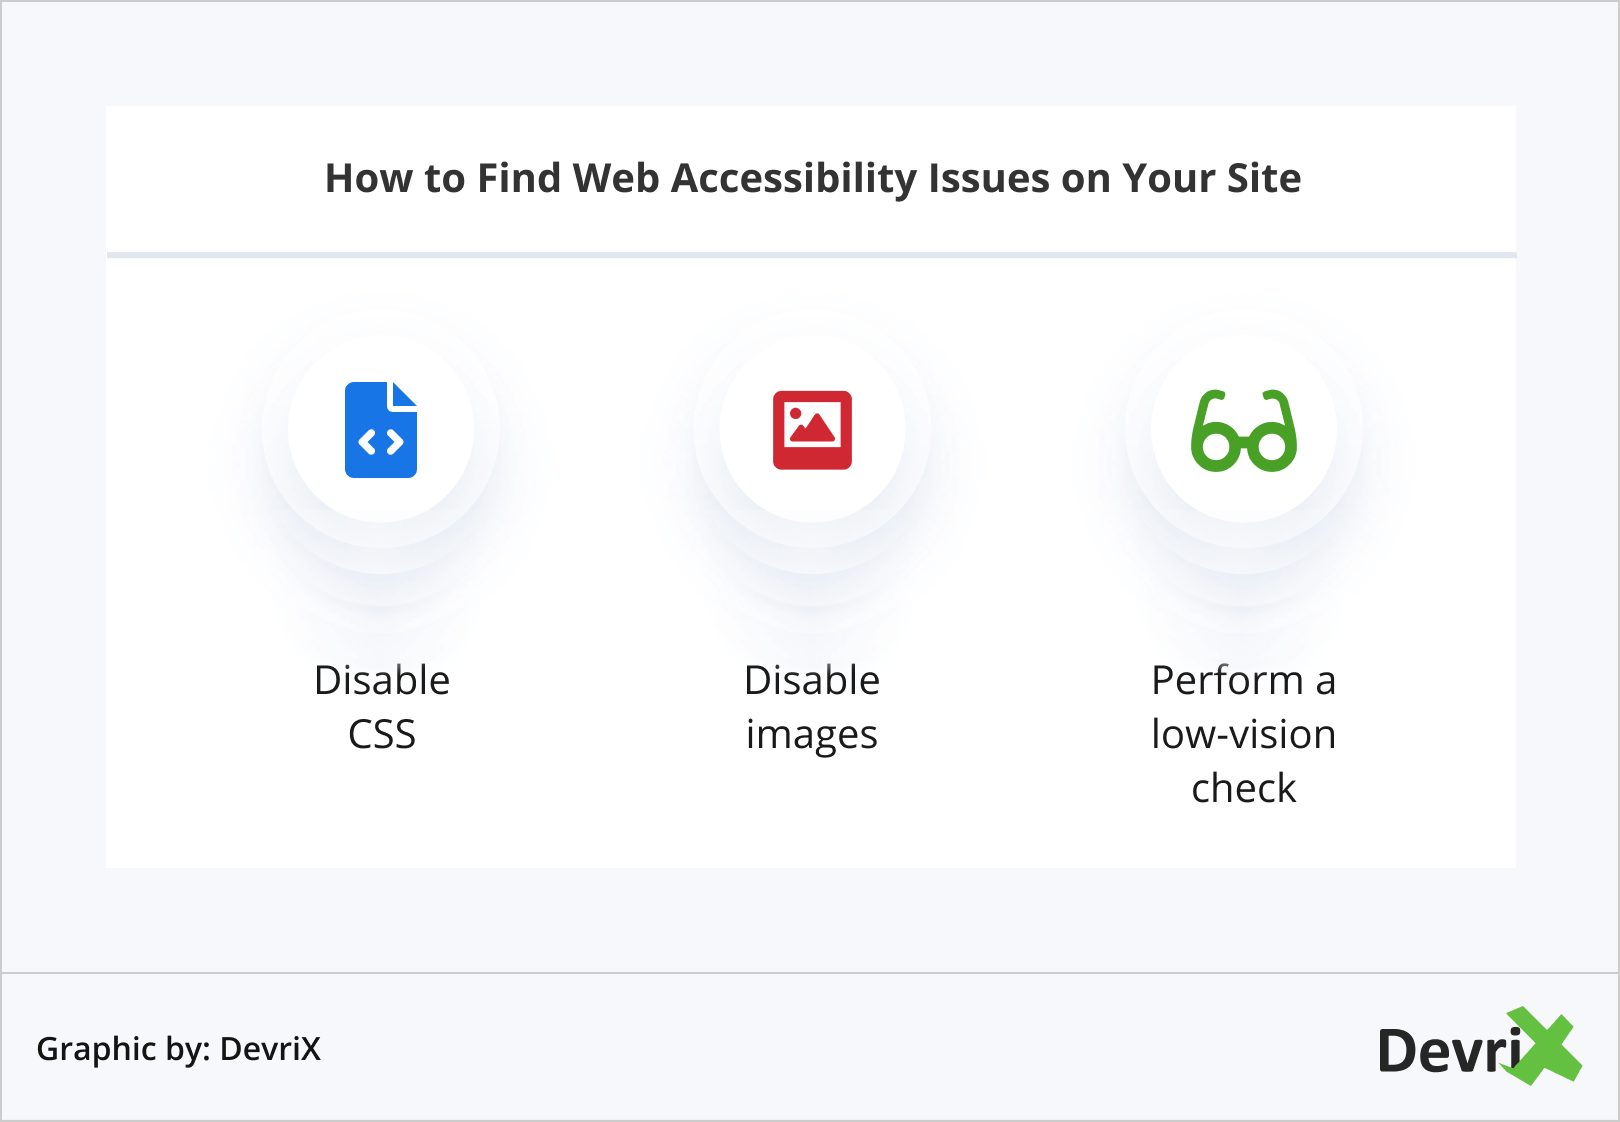 How to Find Web Accessibility Issues on Your Site